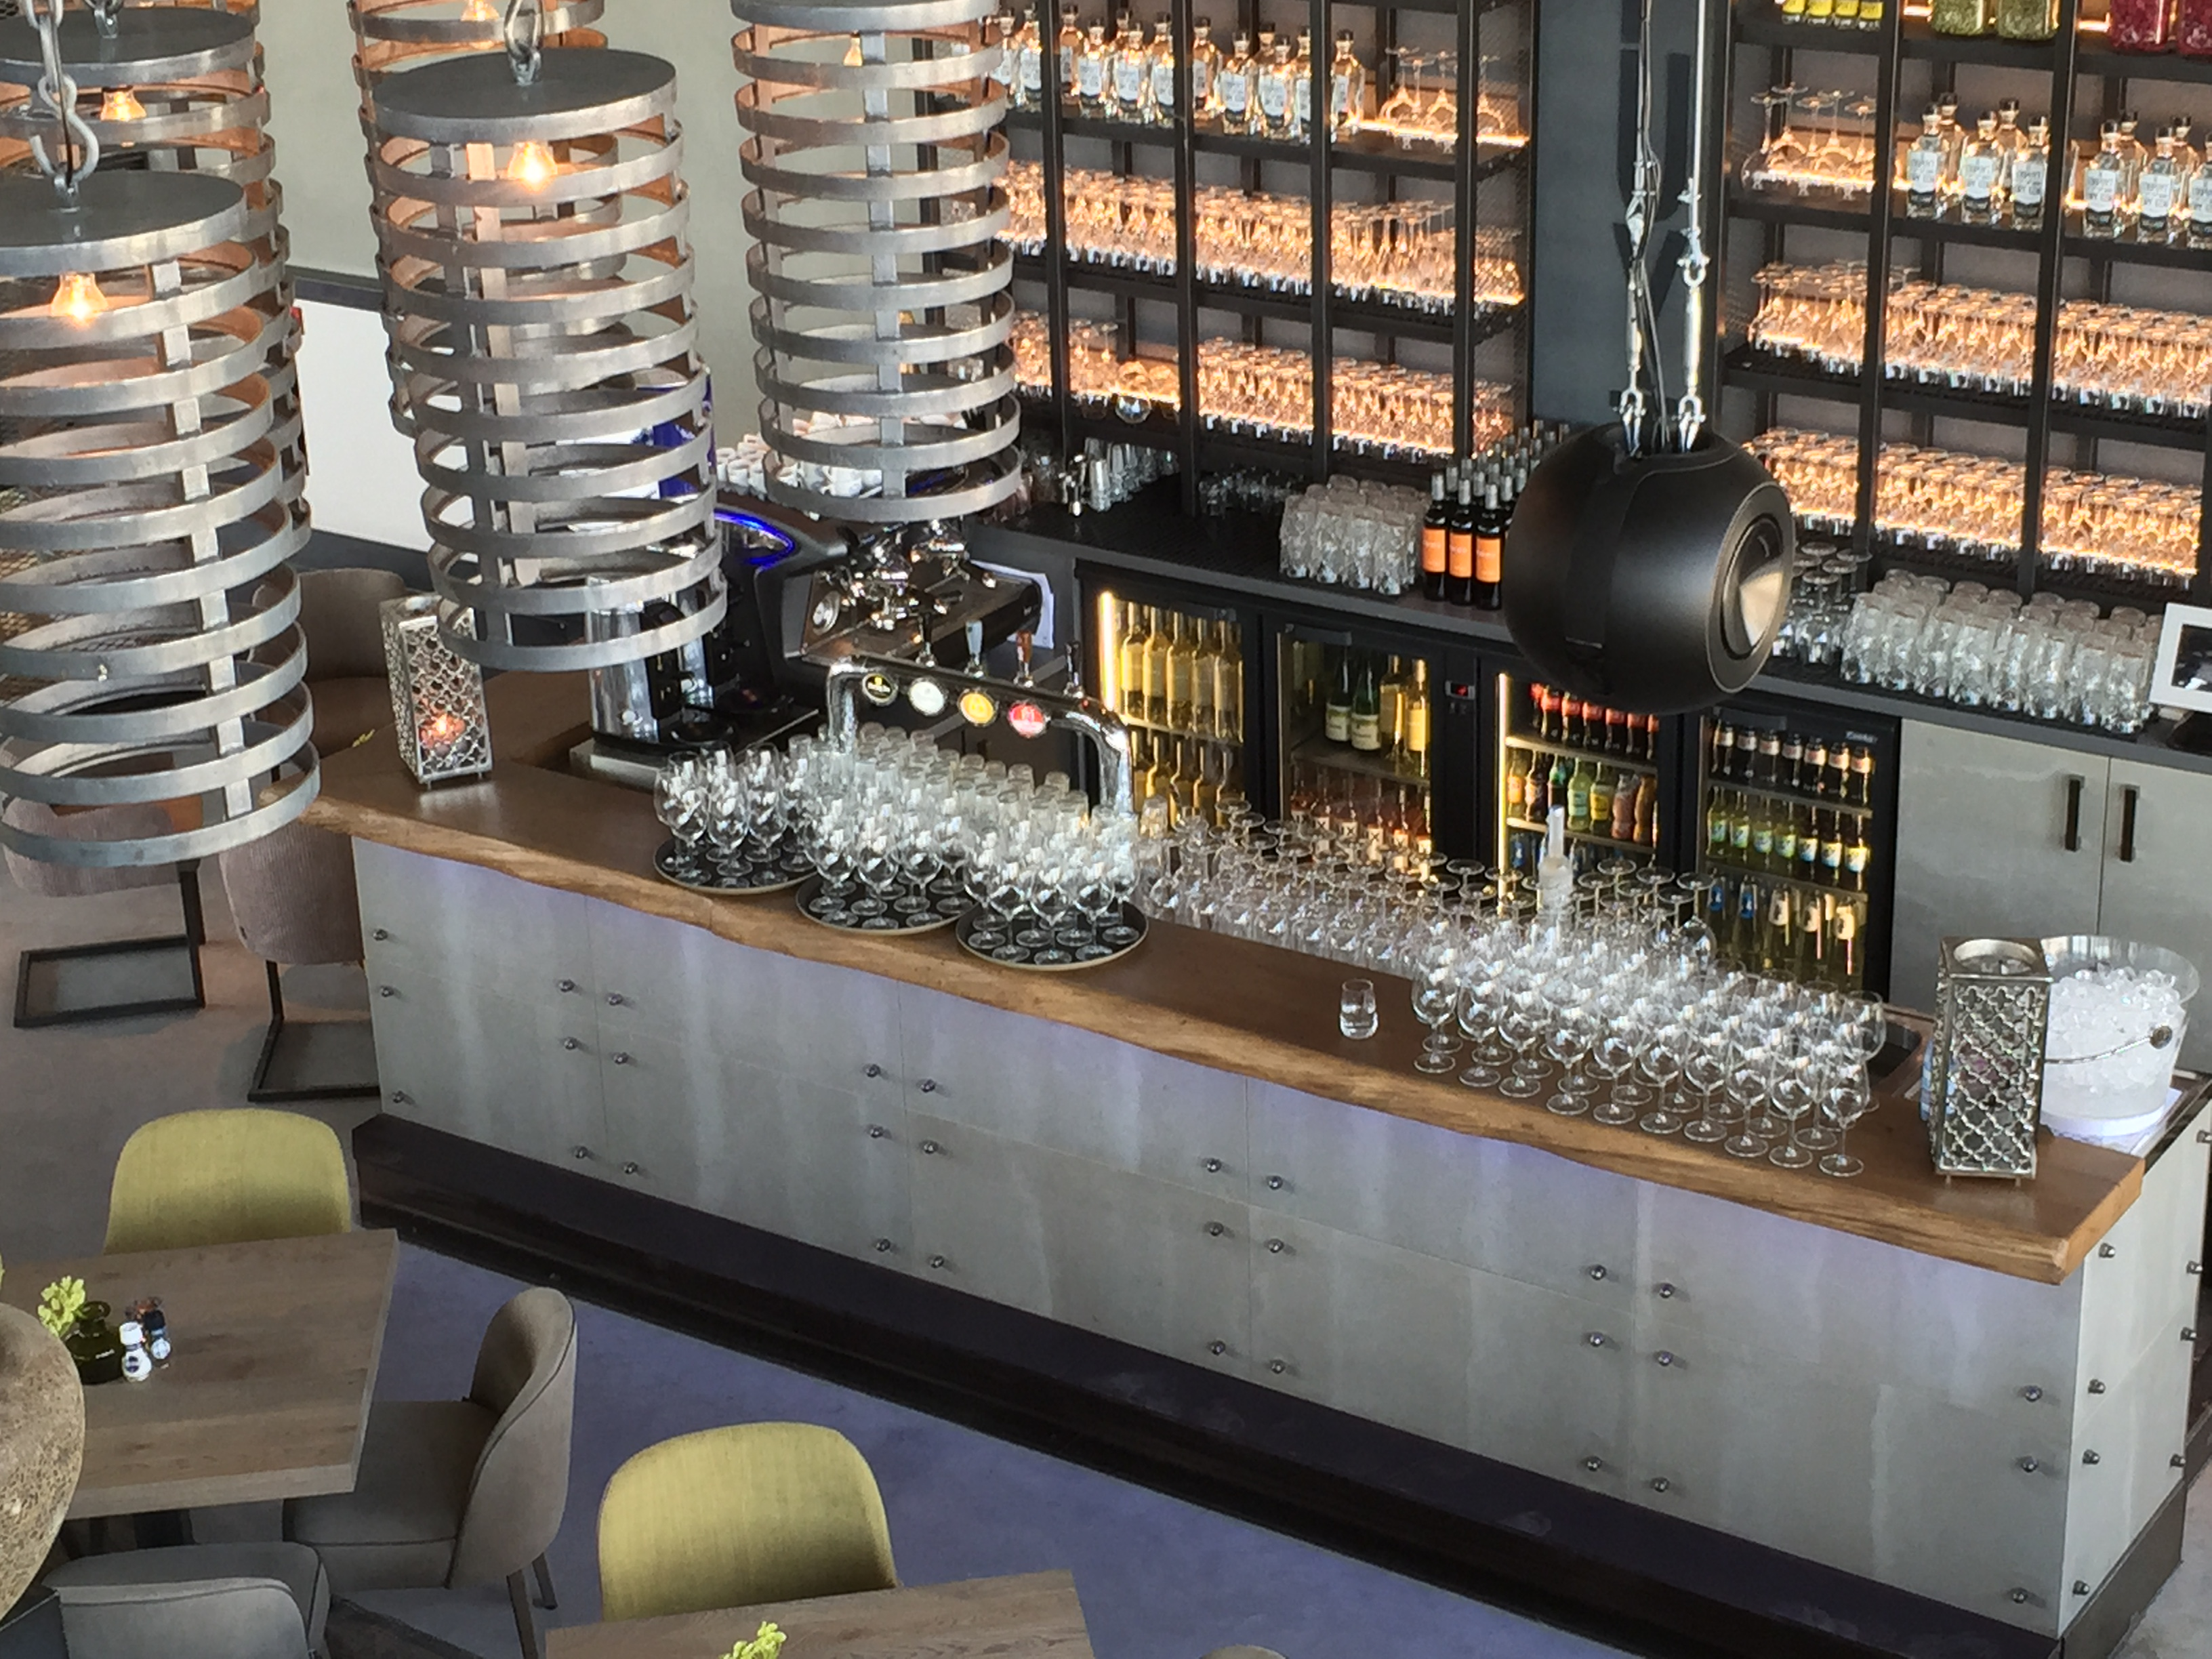 Bar design - Learn about the design process we follow at Gamko